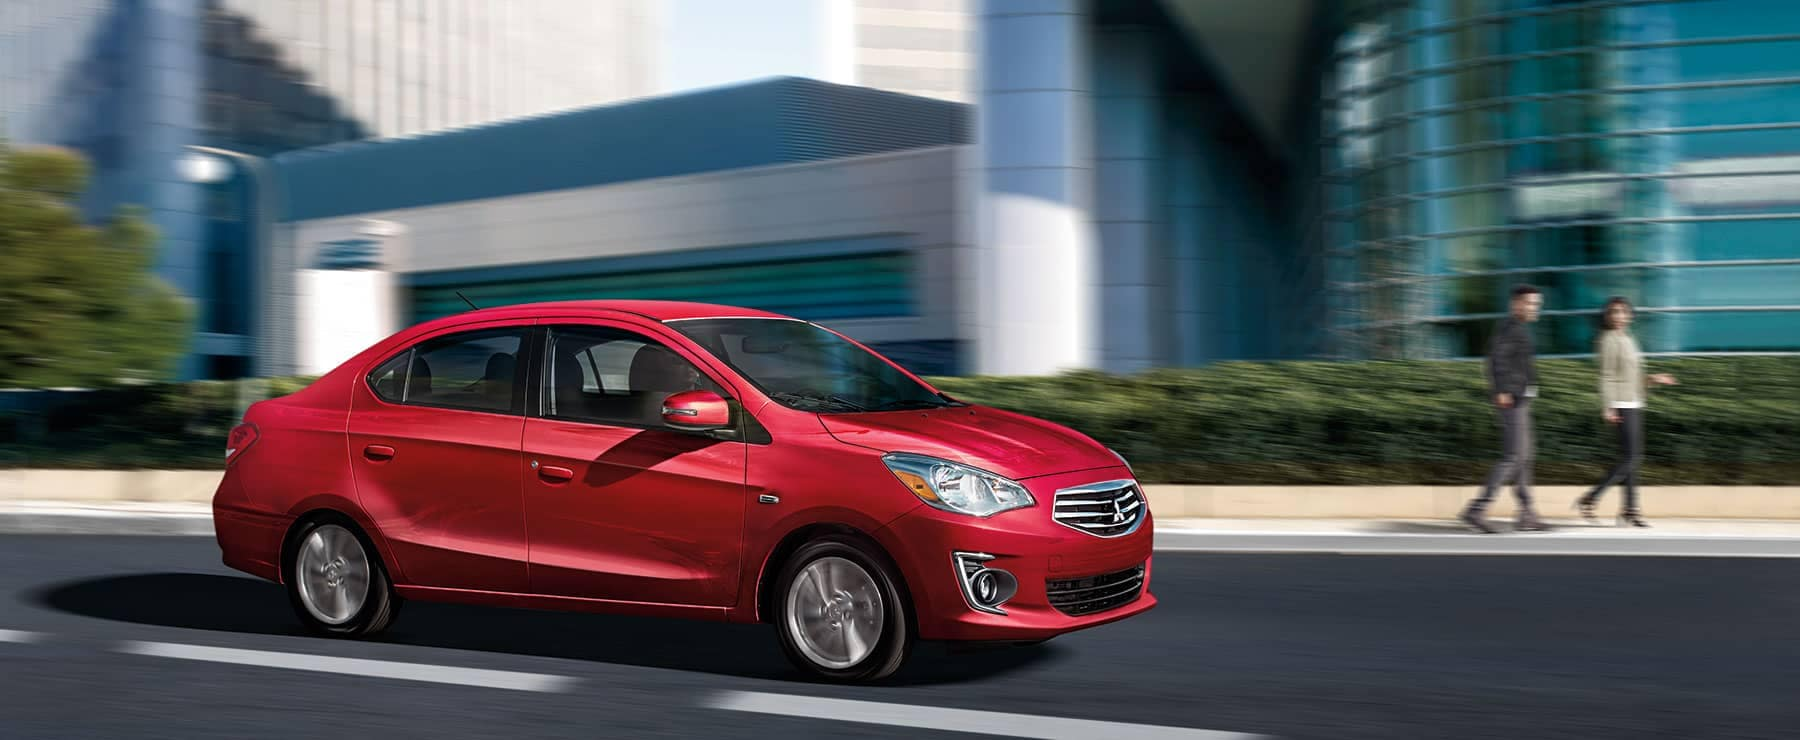 Why The 2018 Mitsubishi Mirage Is A Good Fit For Saipan